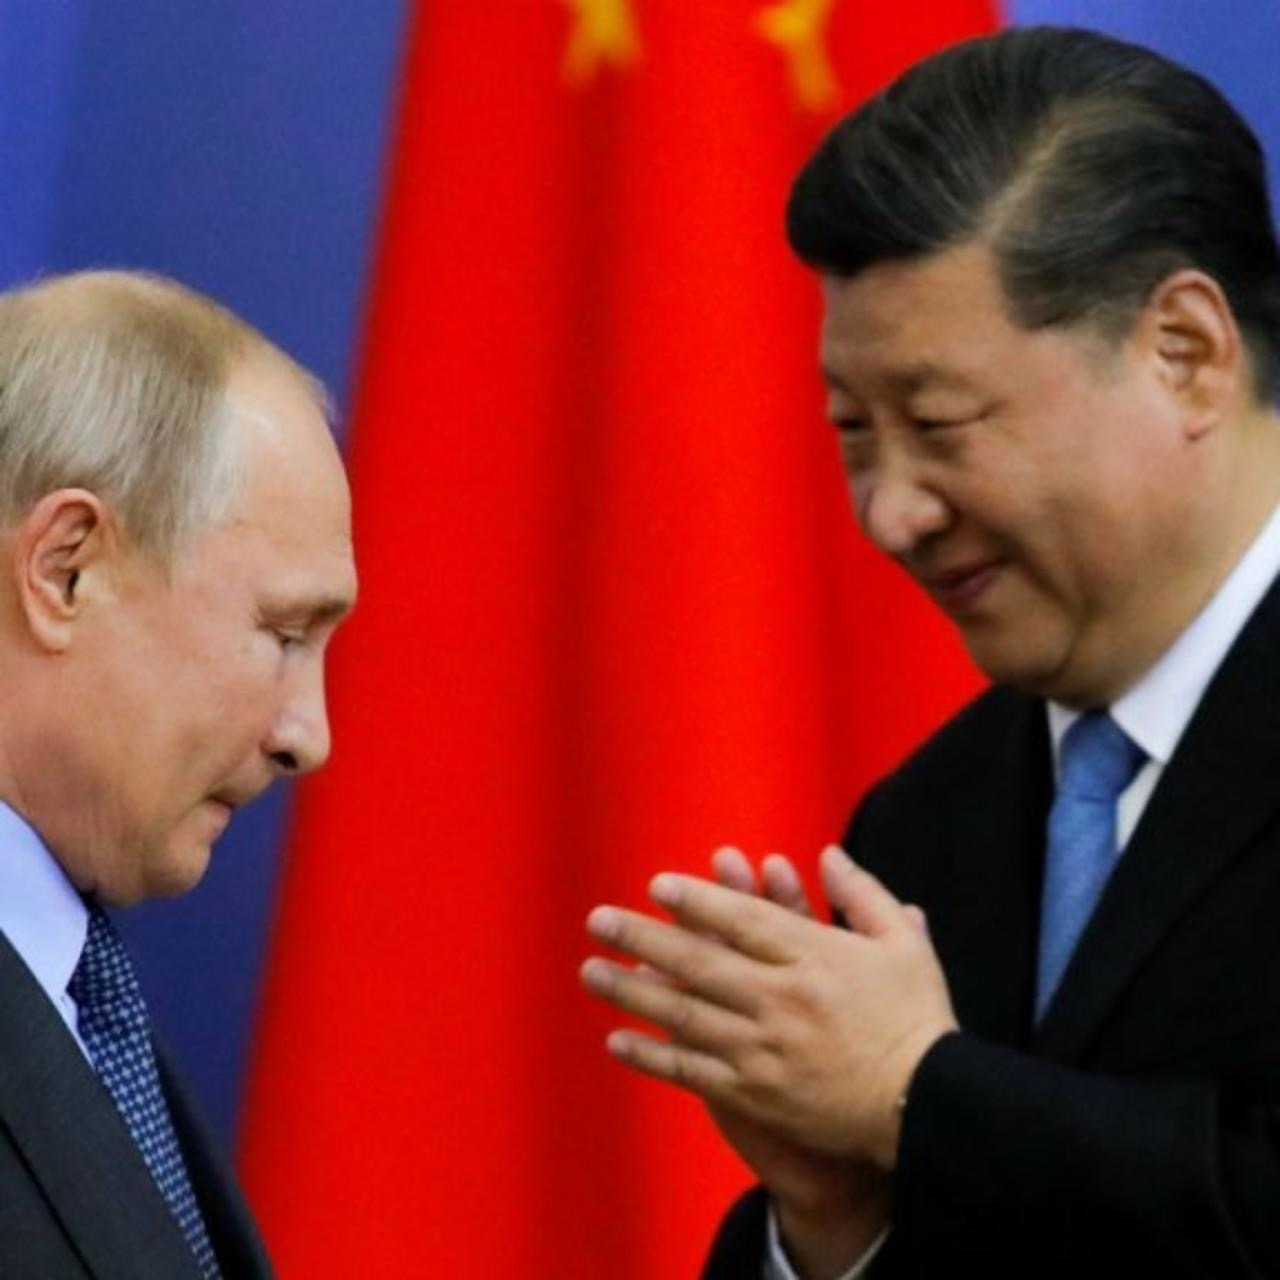 Hot Arctic, the complex partnership between China and Russia